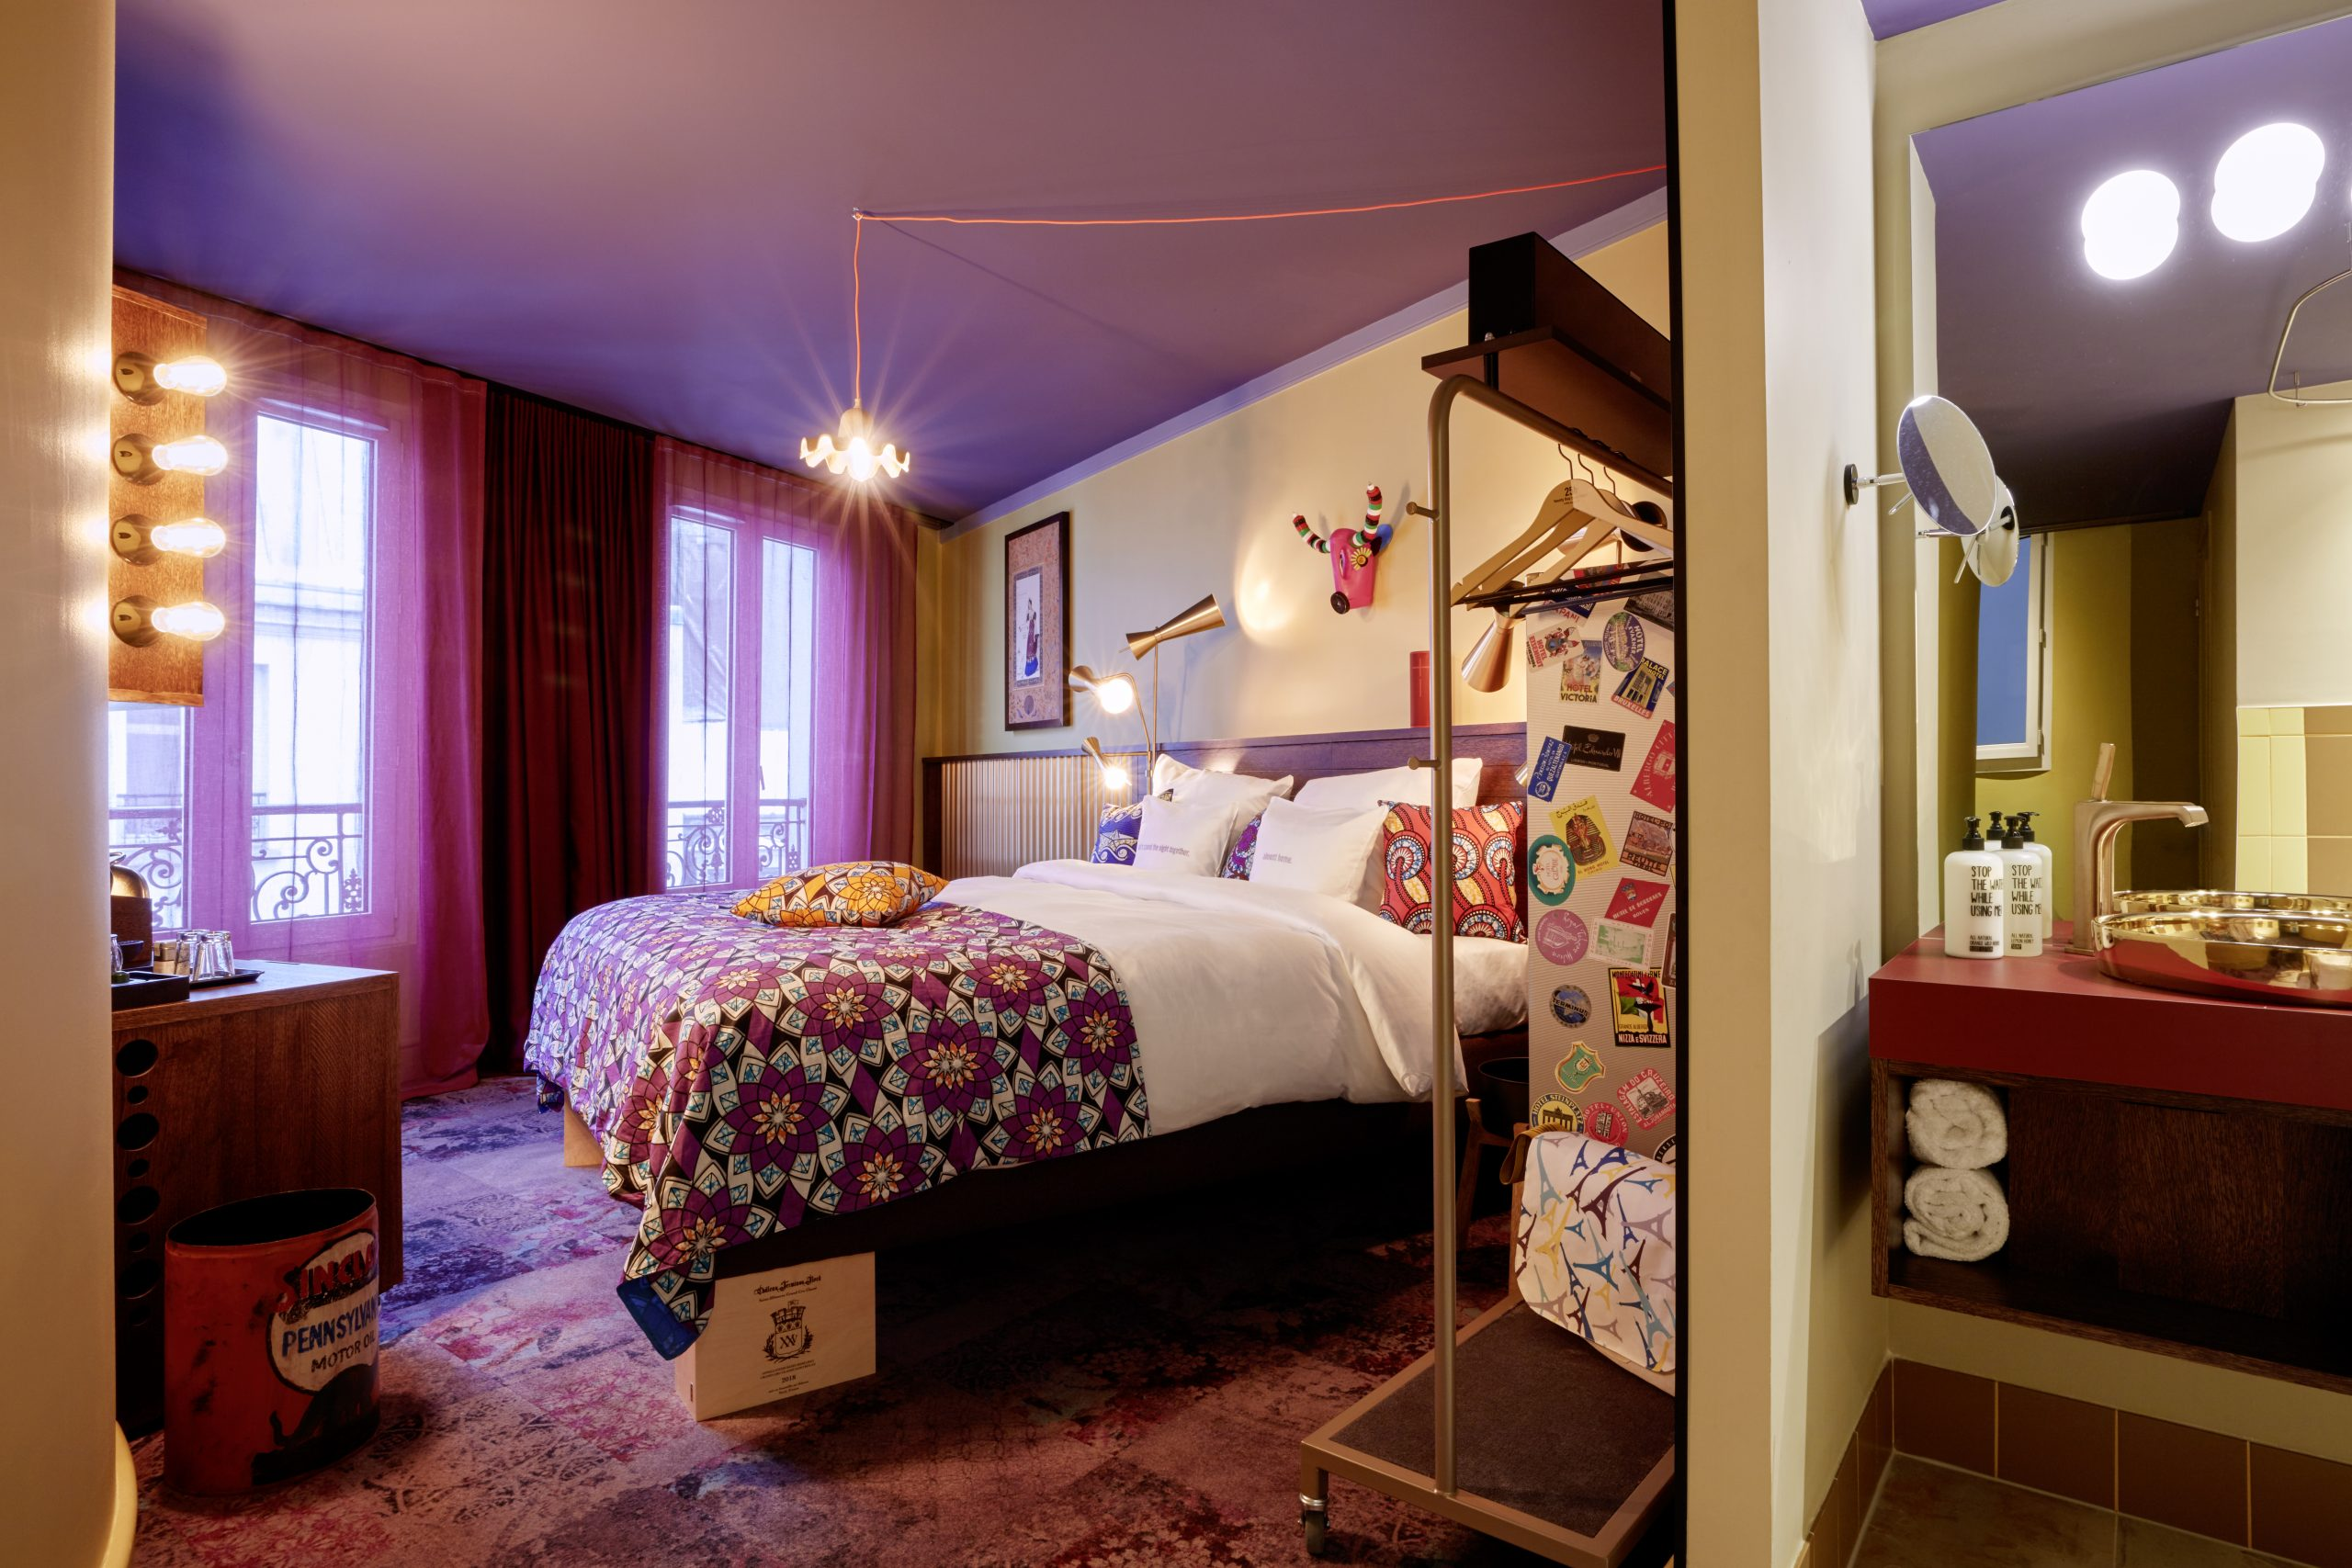 FREESTILE in Paris – the 25hours Hotel dazzles with design carpets from OBJECT CARPET